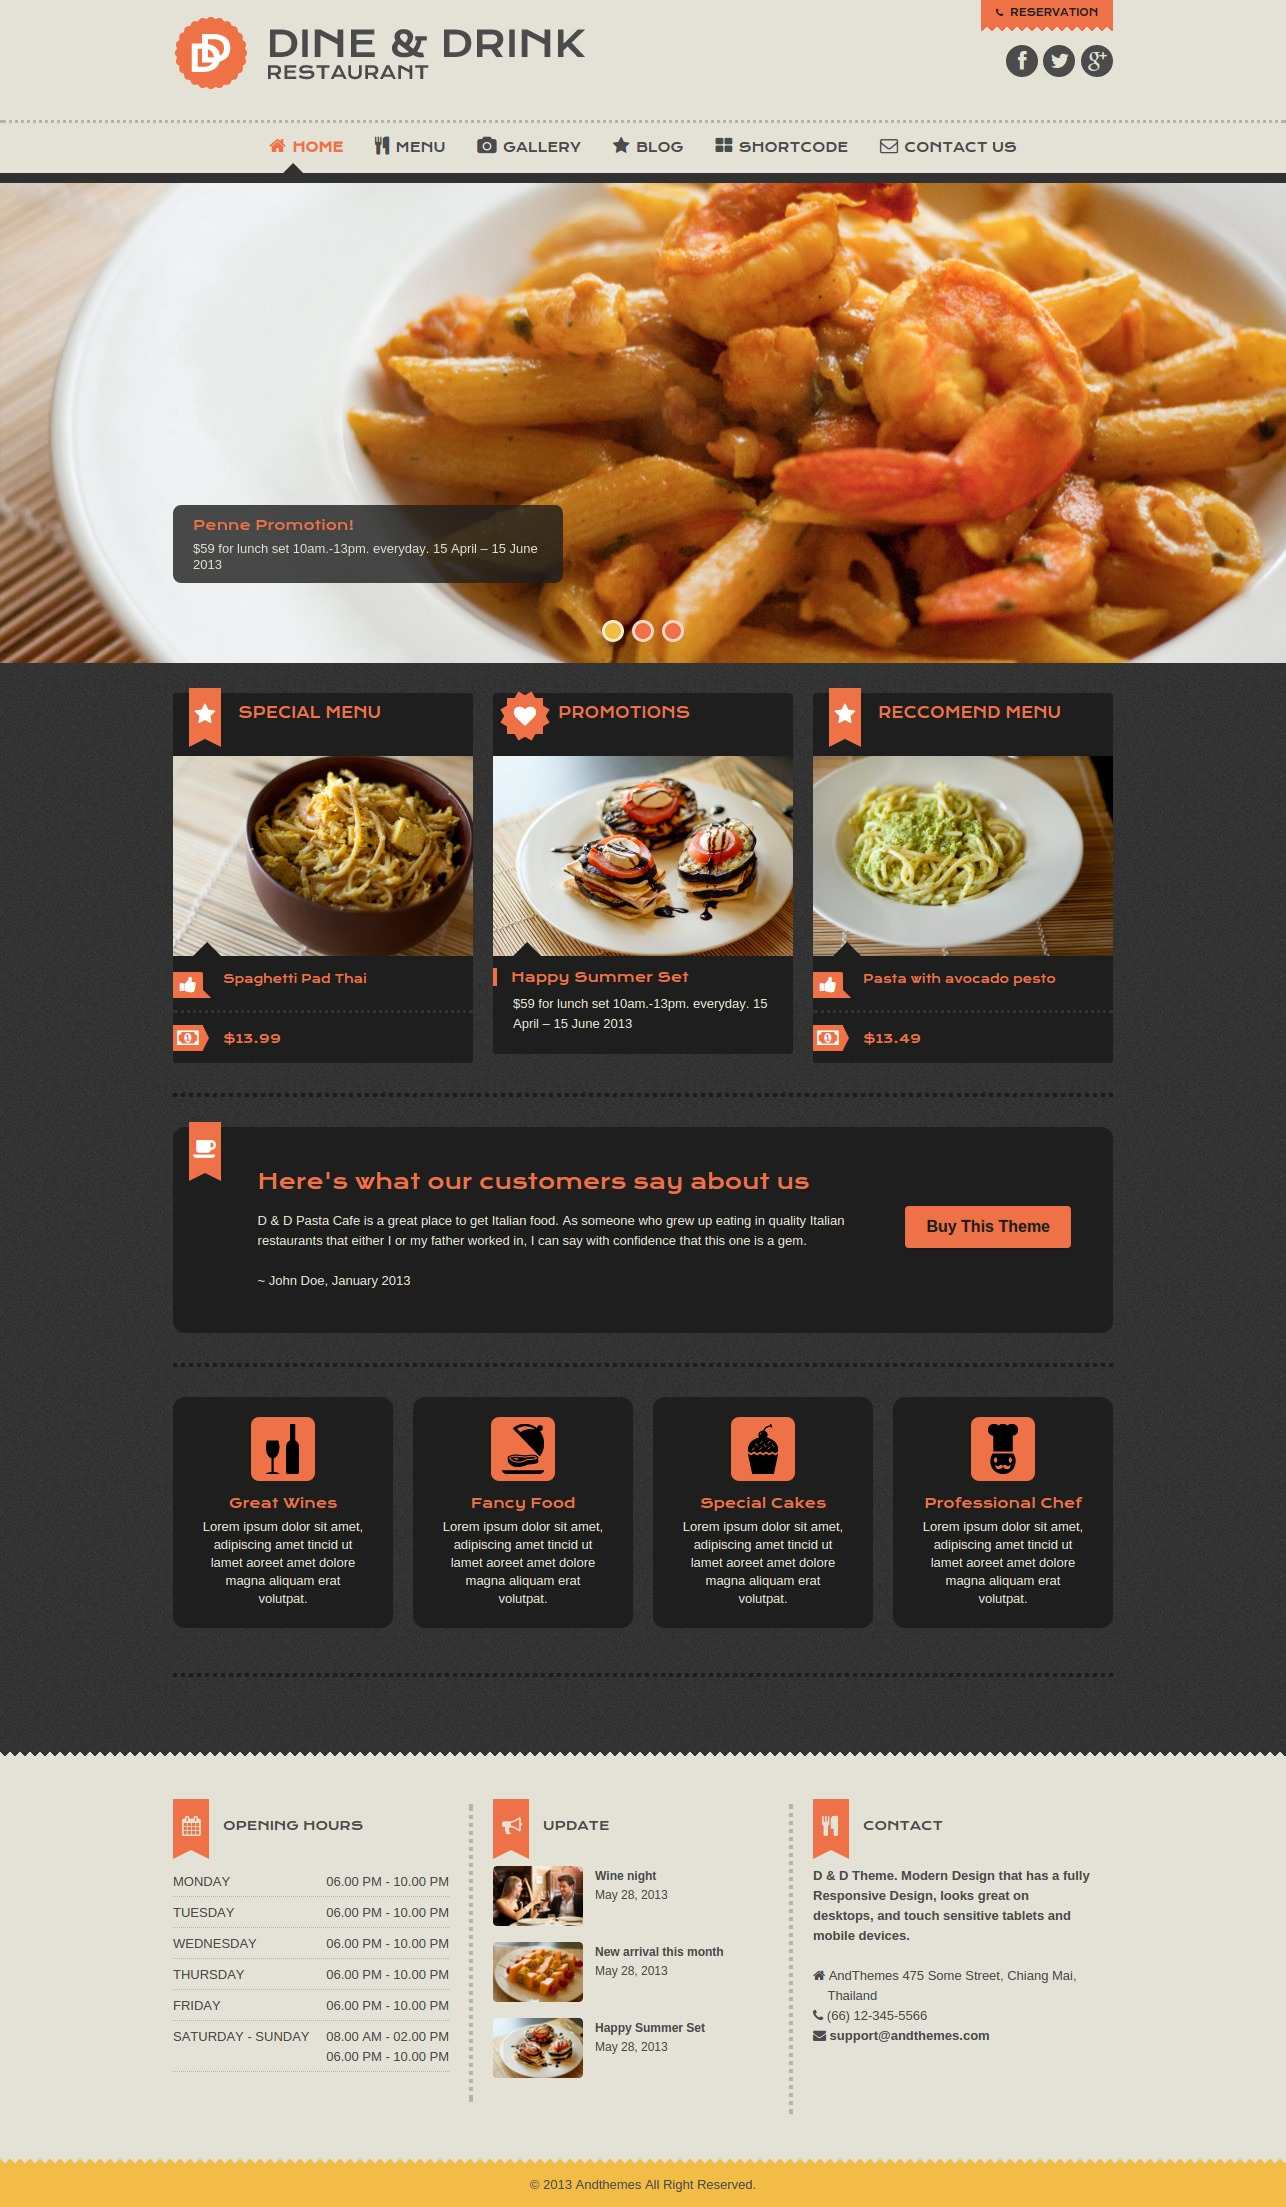 Dine & Drink Restaurant WordPress Theme